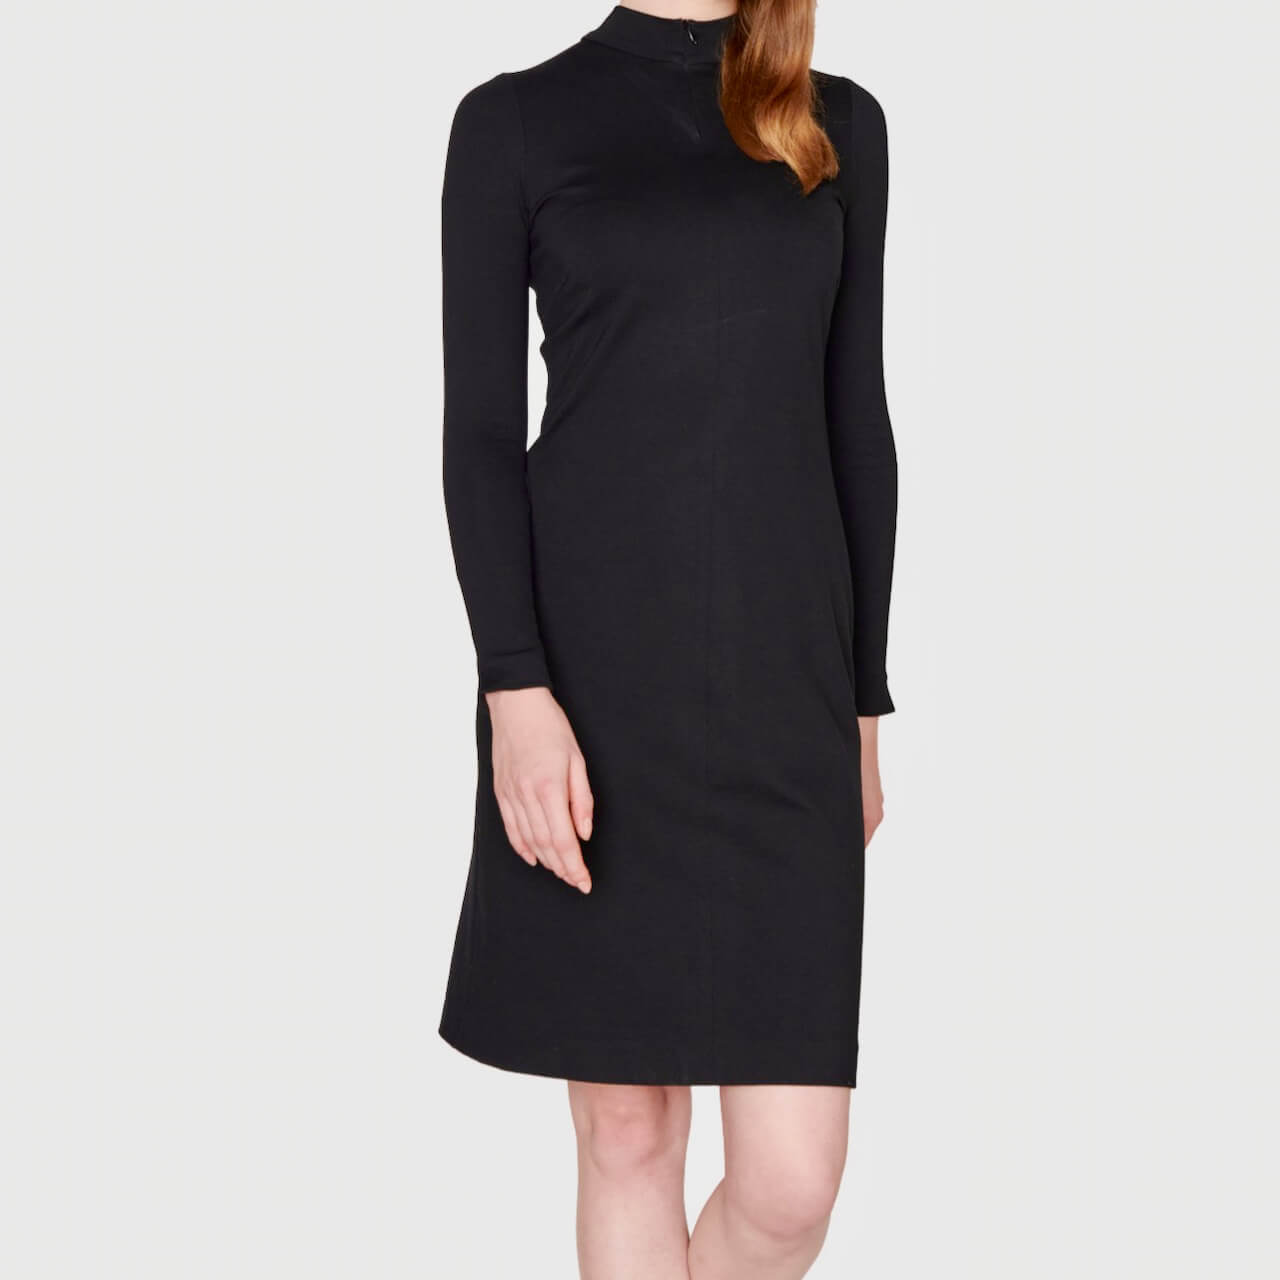 VICTORIA GEISER - Dress SMART Black - 298 €